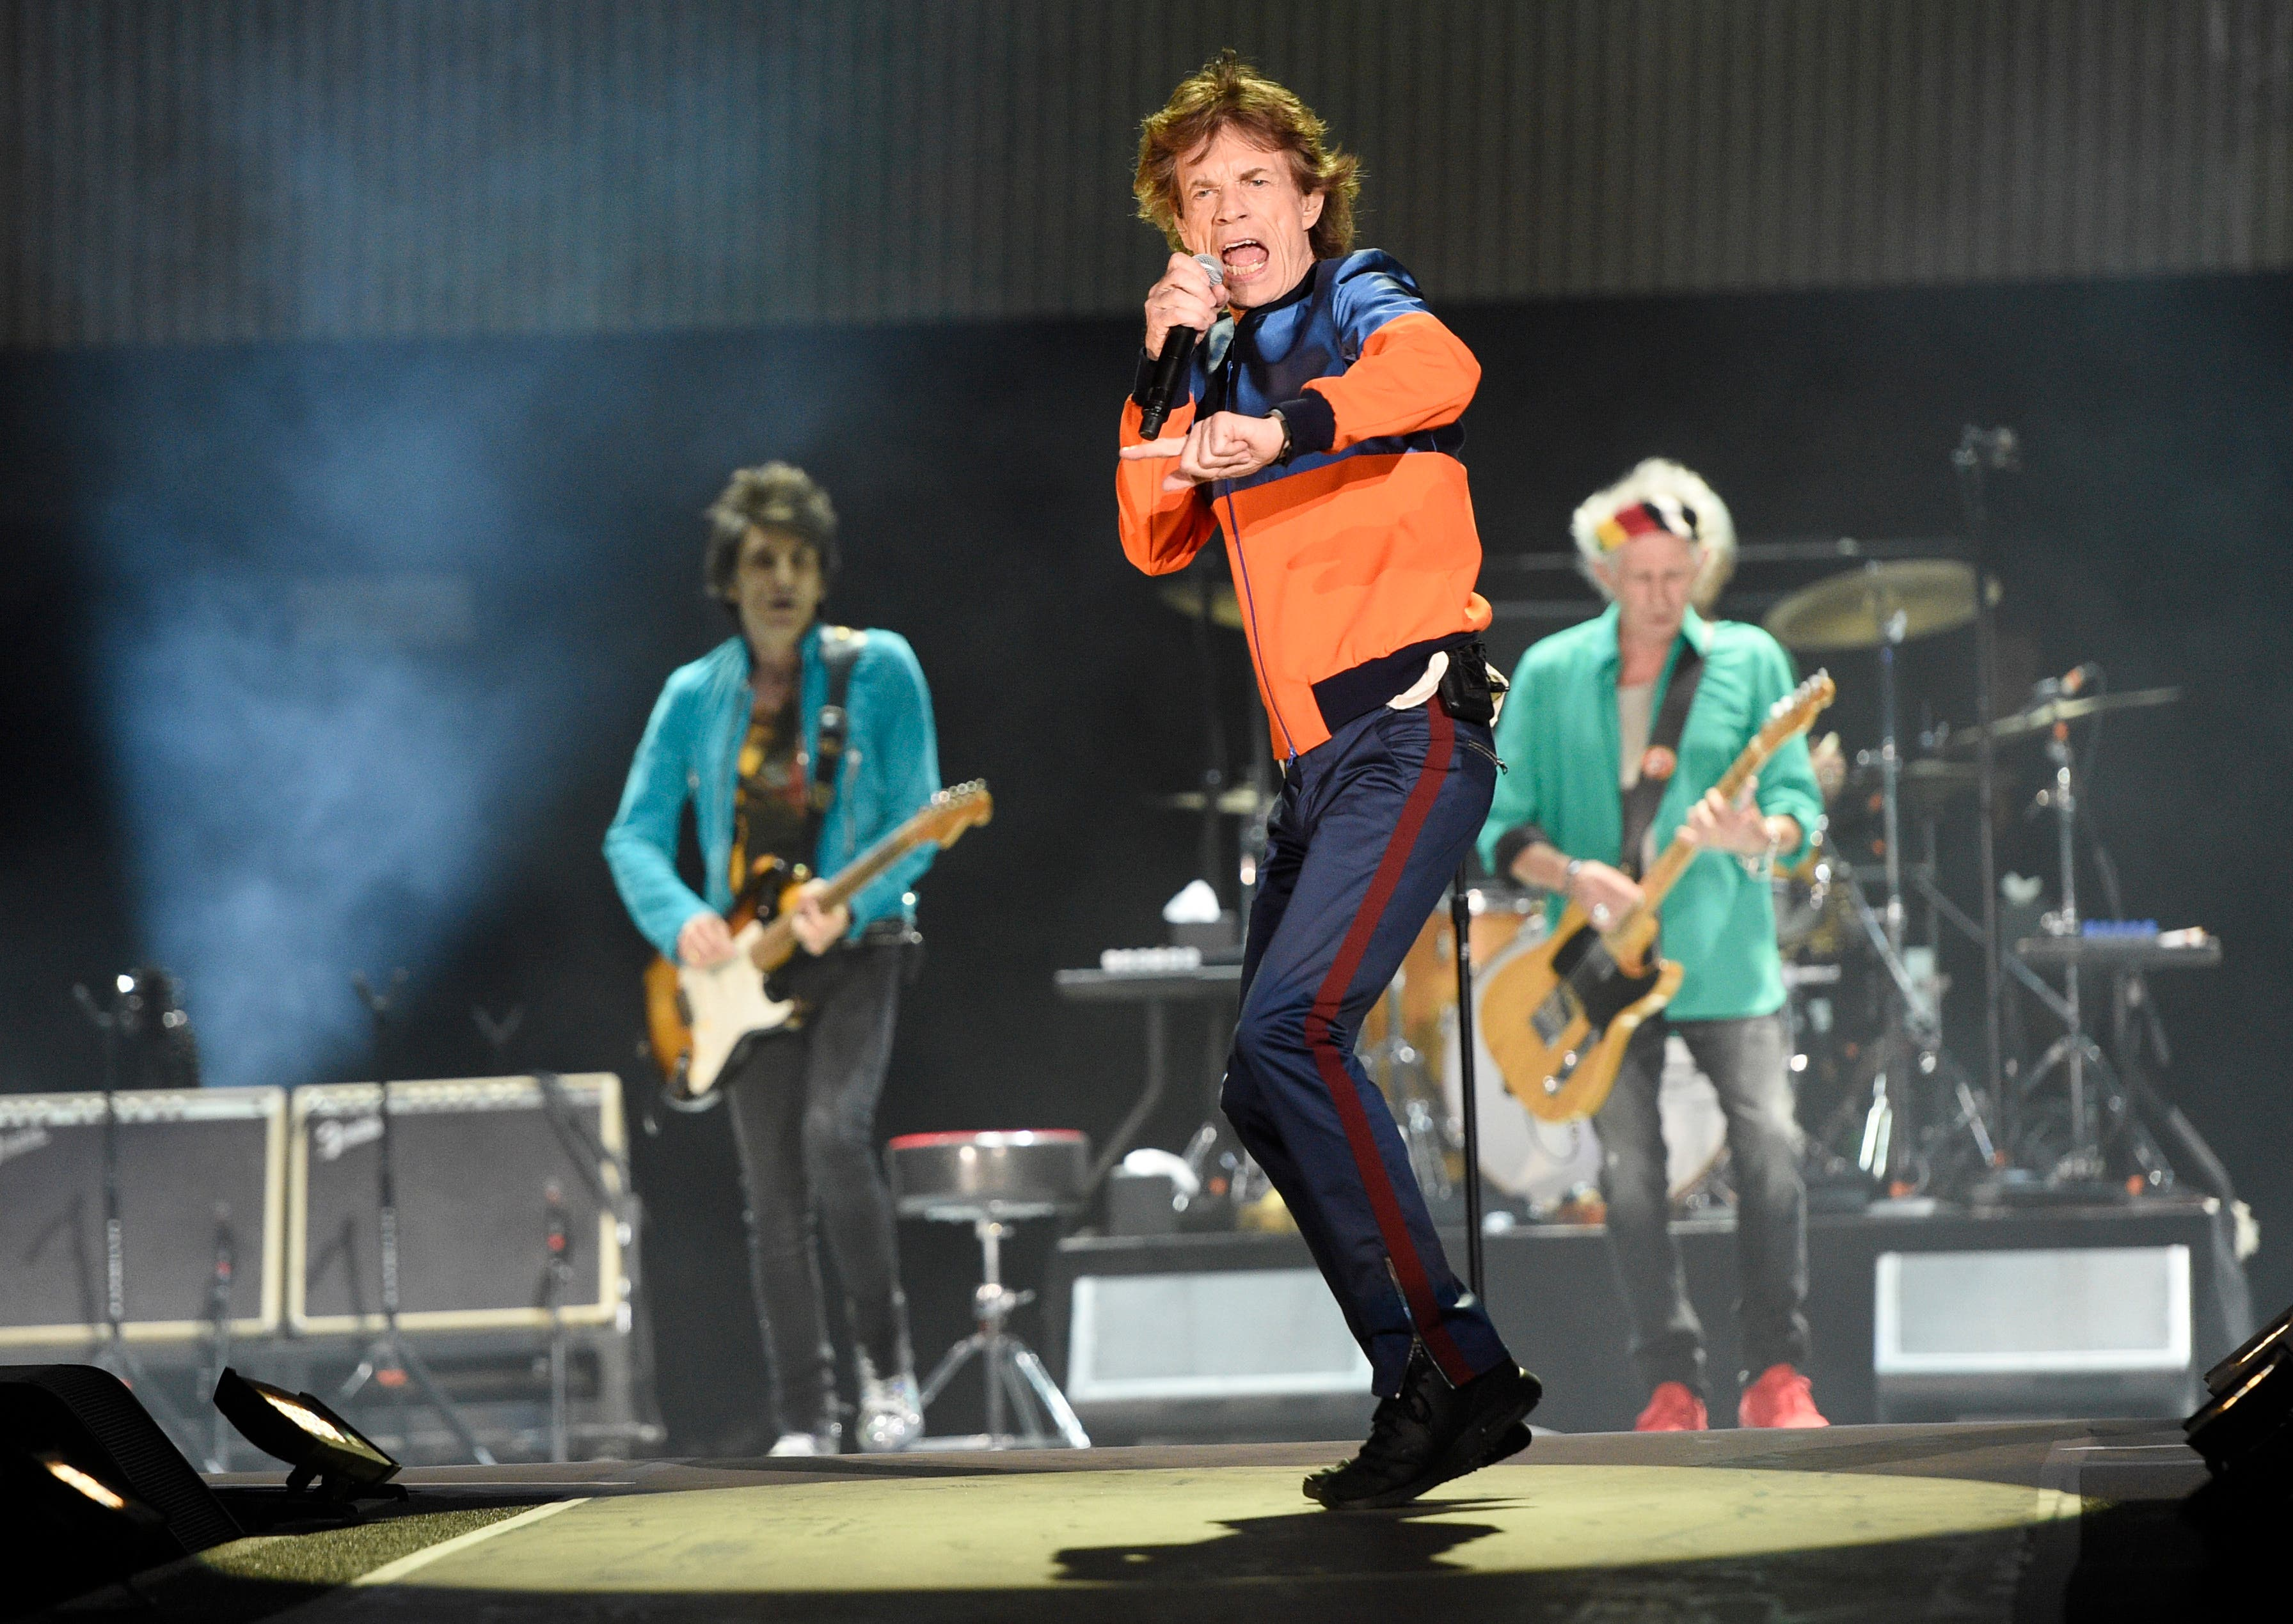 "FILE - In this Oct. 7, 2016 file photo, Mick Jagger, center, performs with Ron Wood, left, and Keith Richards of the Rolling Stones during their performance on day 1 of the 2016 Desert Trip music festival at Empire Polo Field in Indio, Calif.  Jagger, the 73-year-old frontman of the Rolling Stones, was on hand Thursday, Dec. 8, 2016 at a New York hospital when girlfriend, Melanie Hamrick, gave birth to the couple's son. According to a statement, both parents are ""delighted"" and ""mother and baby are doing well.""(Photo by Chris Pizzello/Invision/AP)"